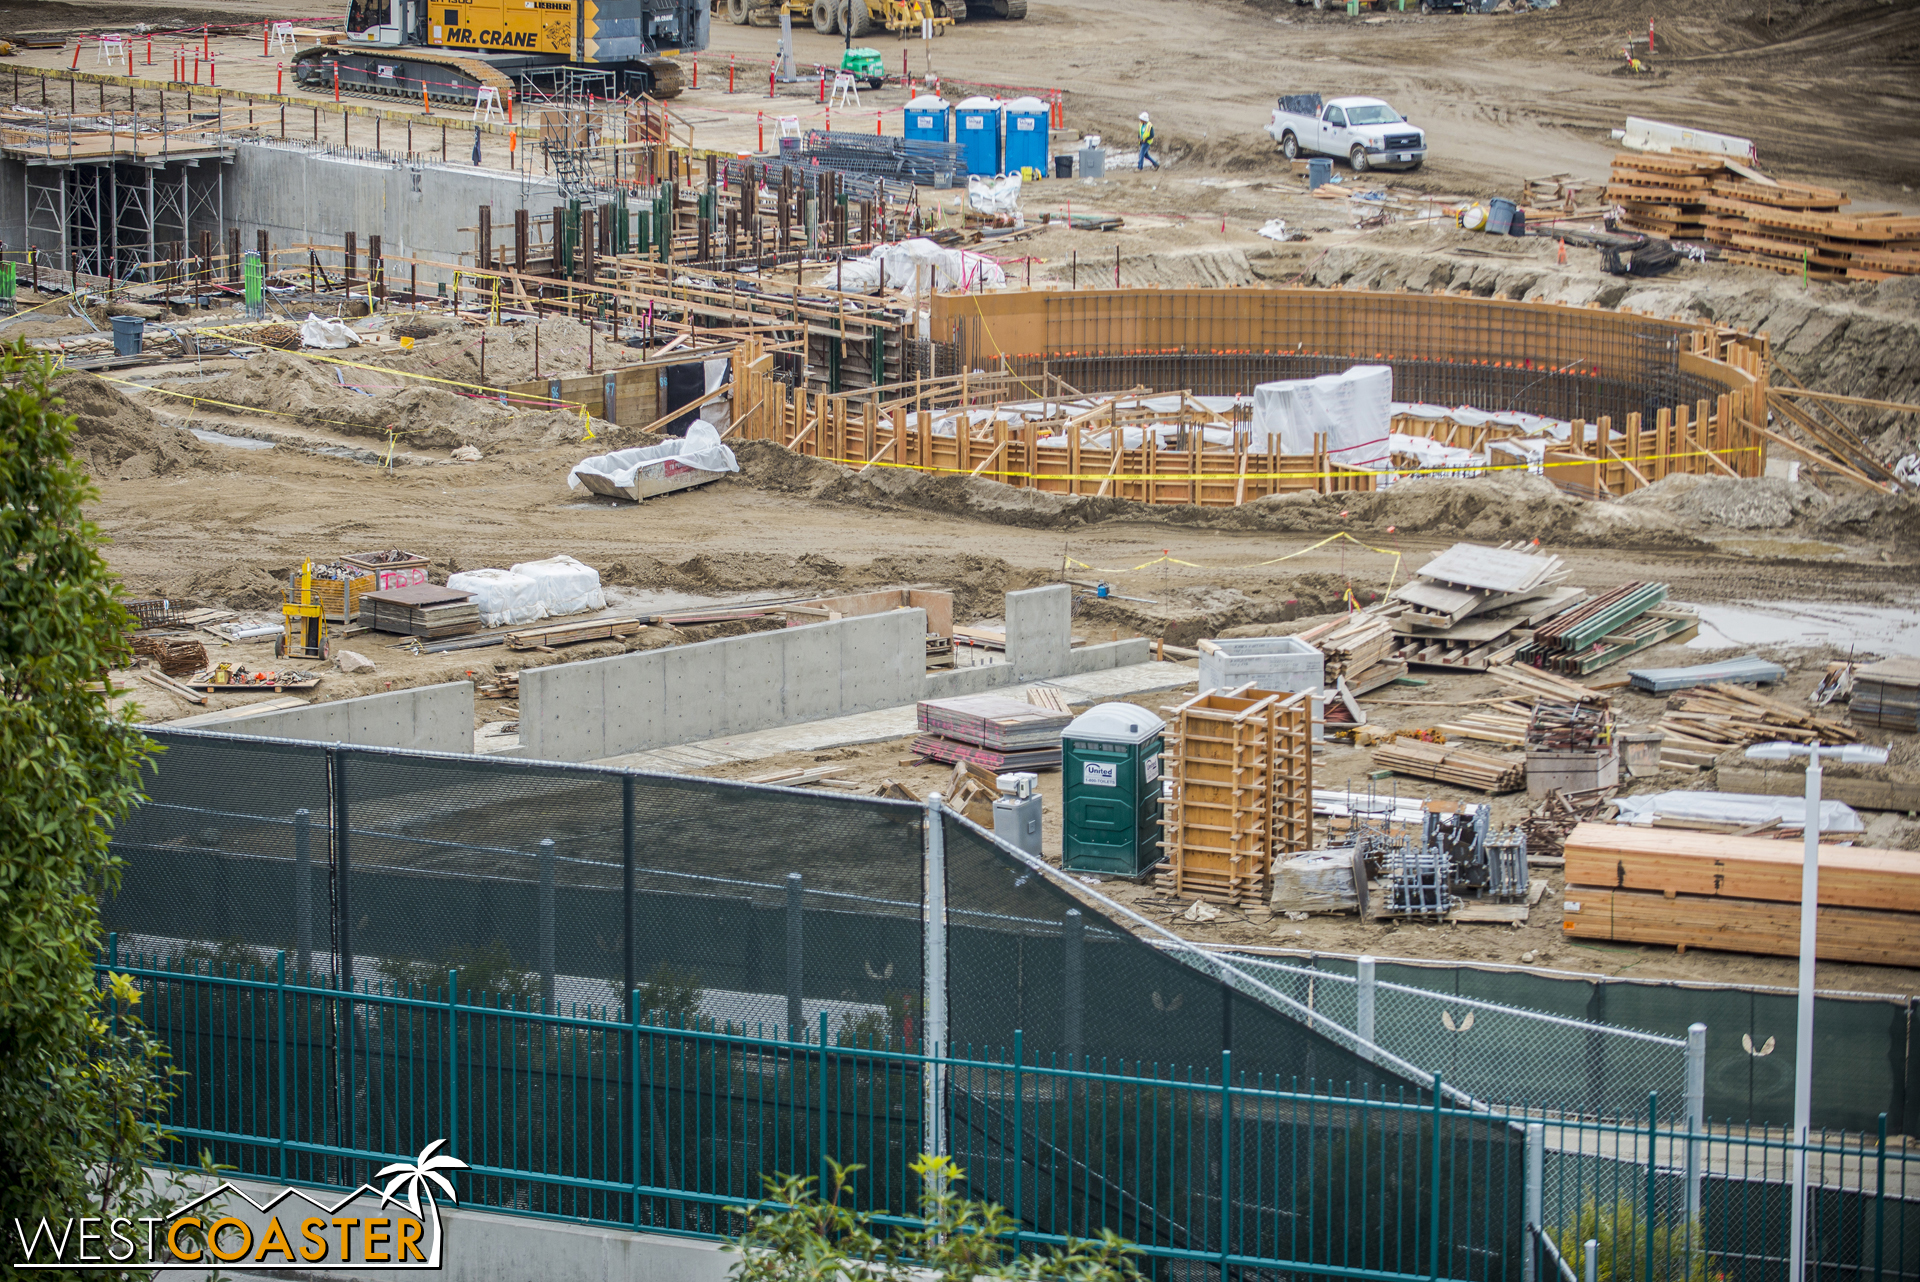 Additional concrete walls have gone up closer to Disneyland Drive.